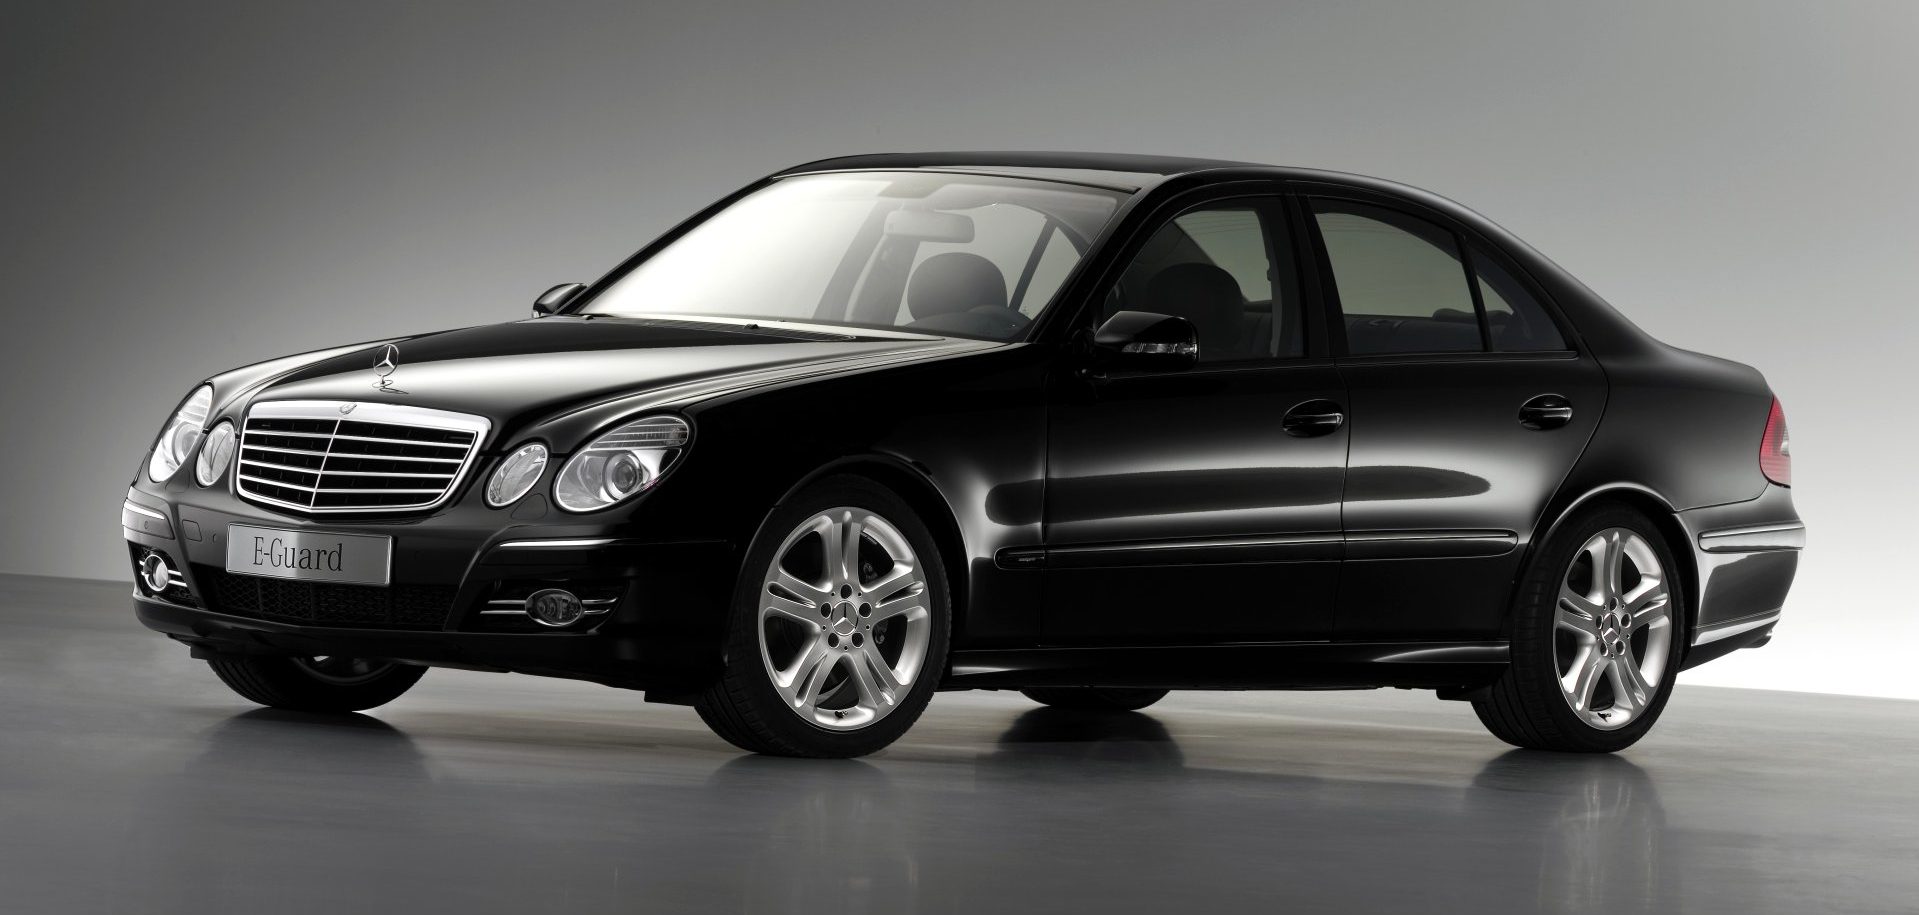 "the cullen cars images bella's mercedes-benz s600 ""before car"" hd"